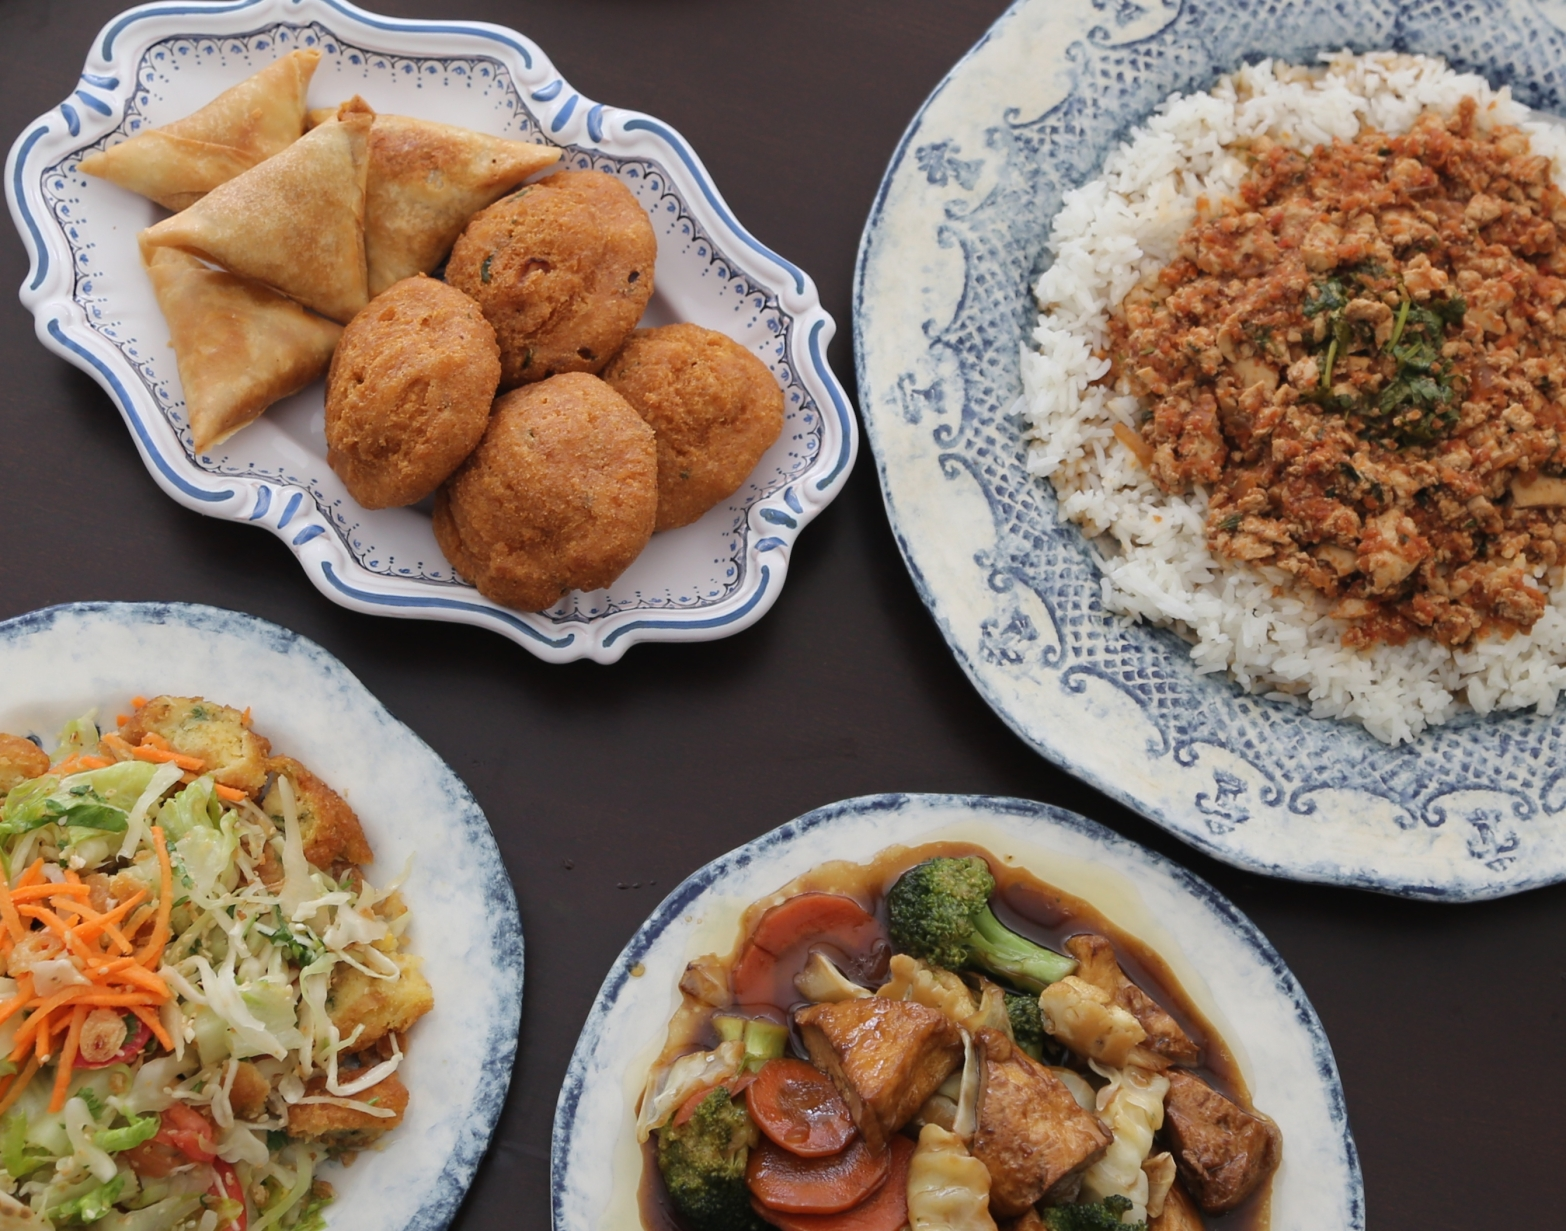 A medley of a few tasty vegetarian dishes at Mandalay Restaurant